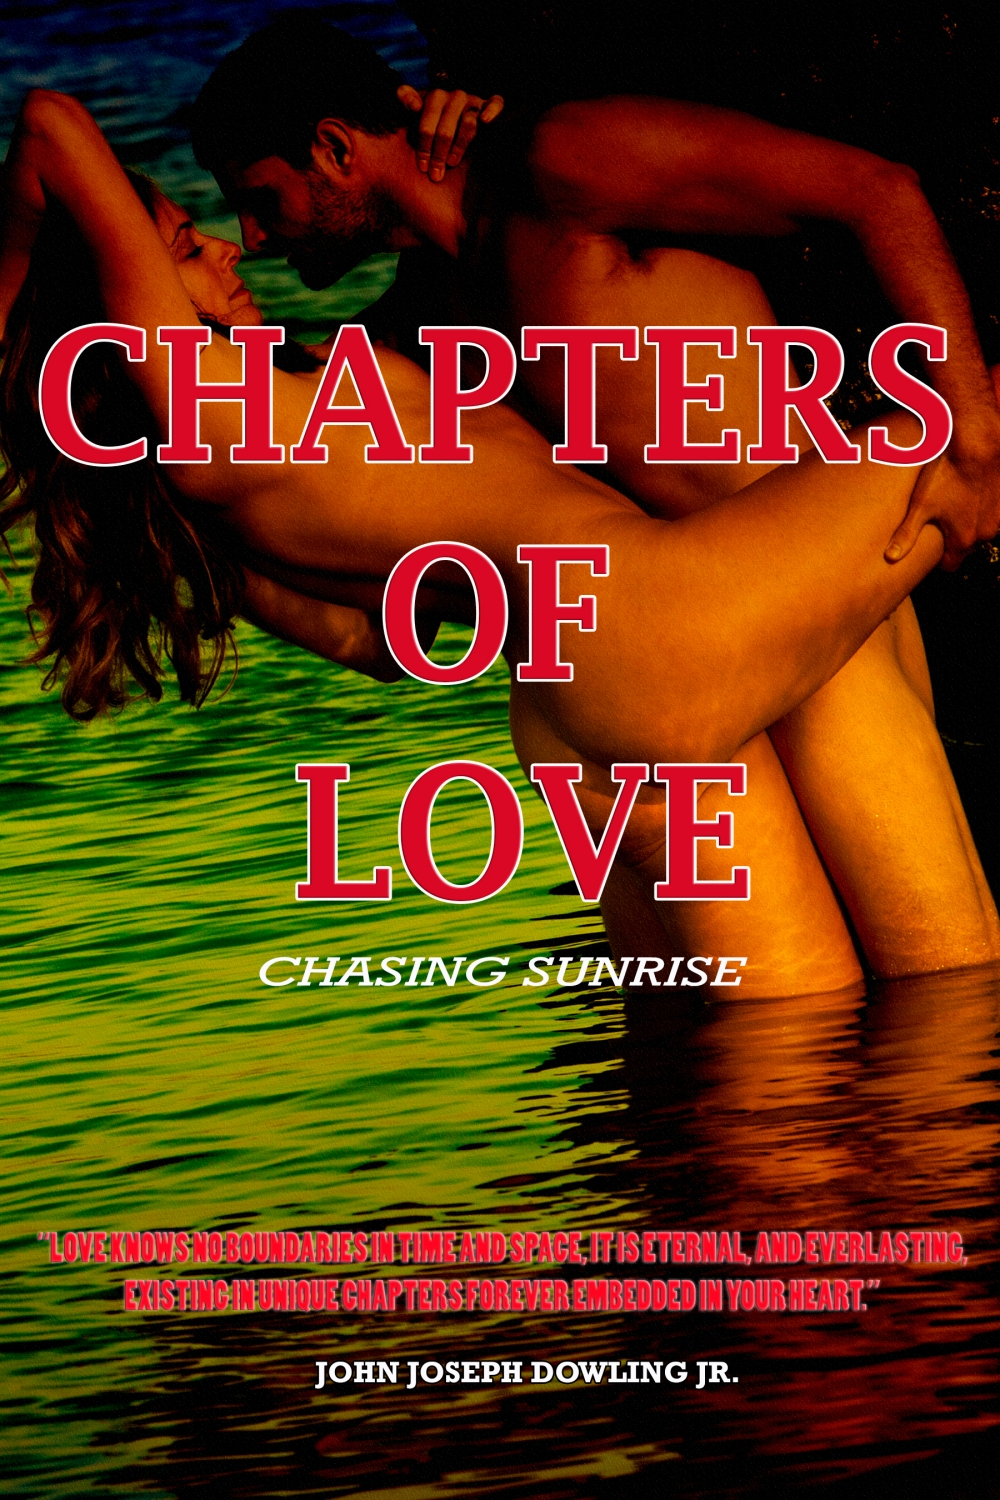 Chapters Of Love HardCover and Paperback Cover 5